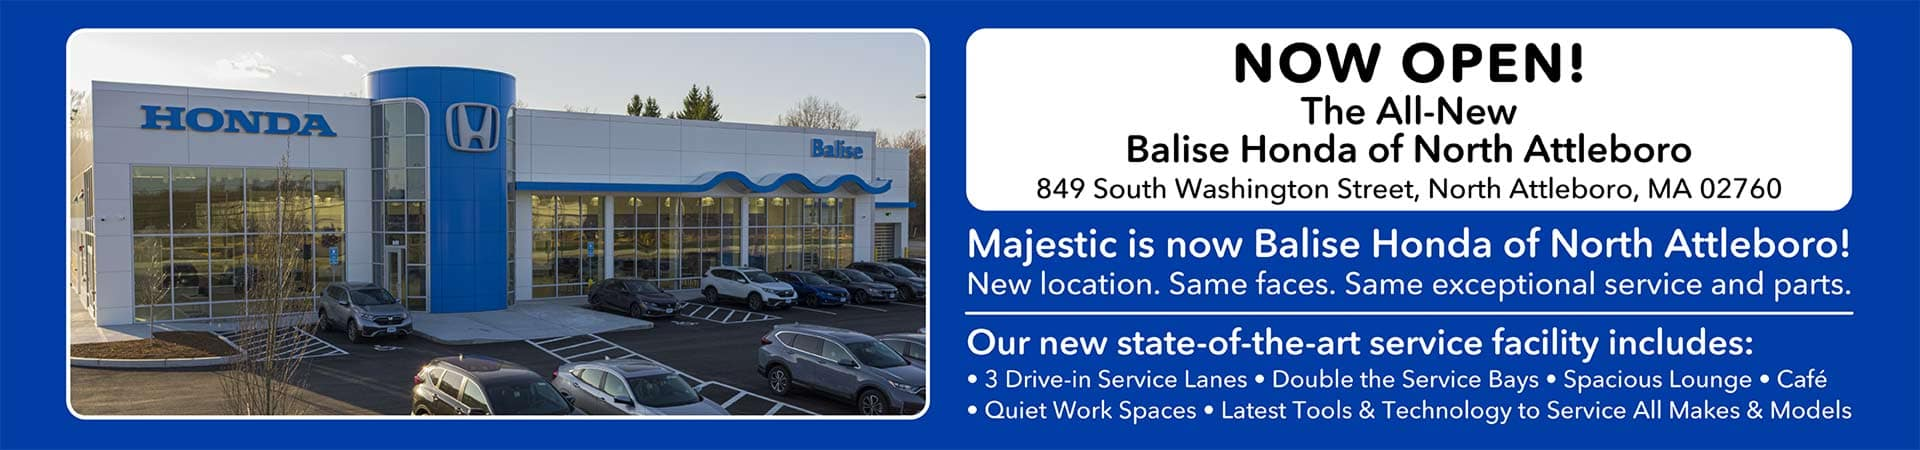 Balise Honda of North Attleboro is Now Open